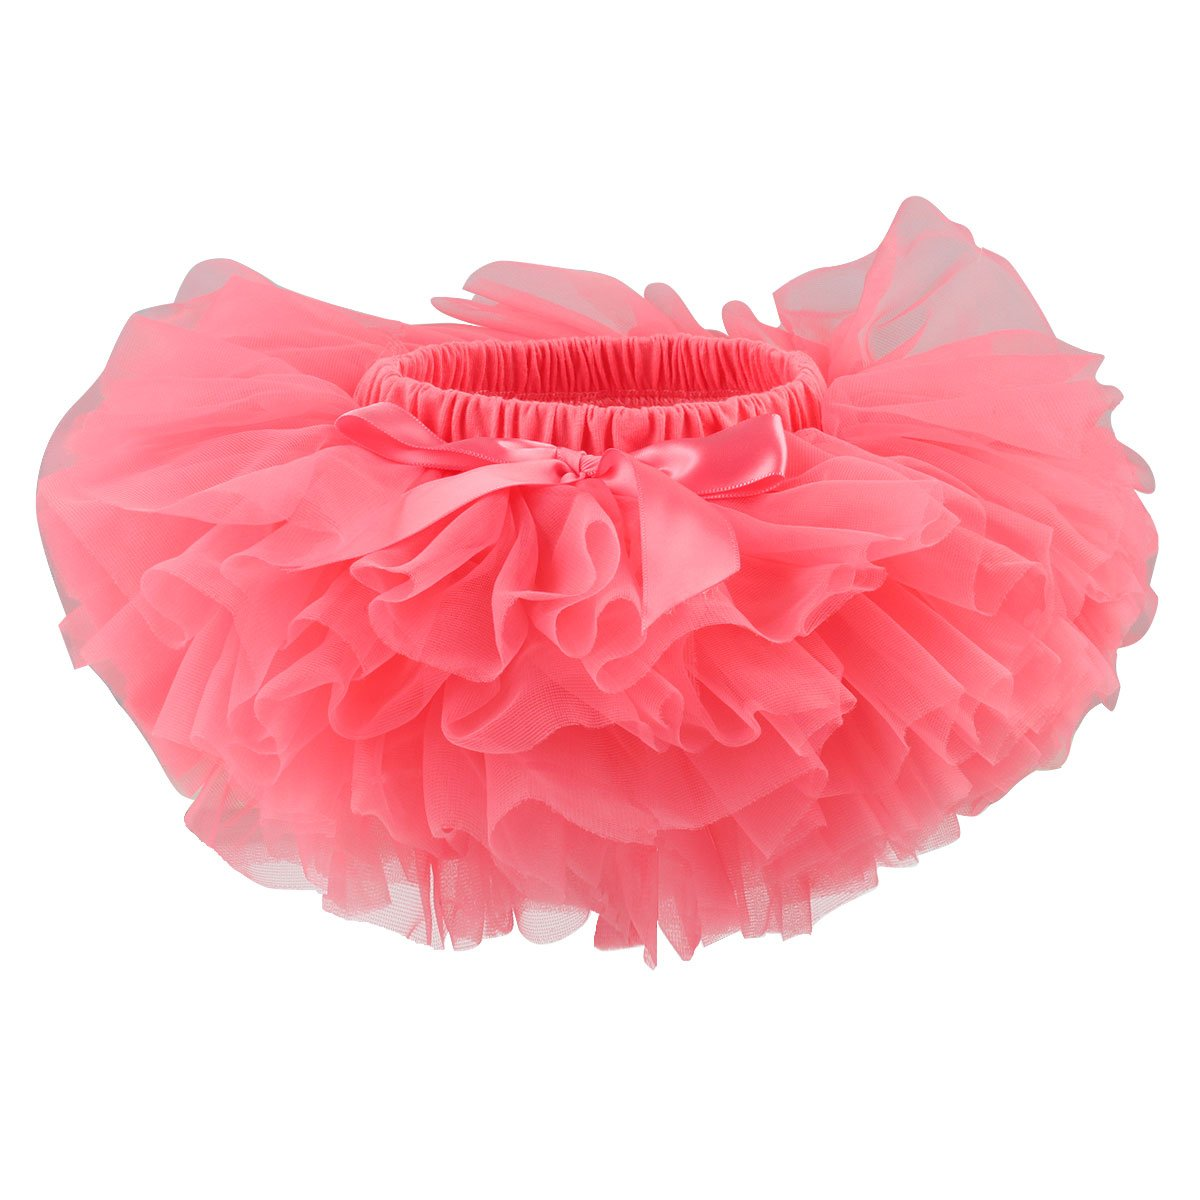 0 to 36 Months Slowera Baby Girls Soft Tutu Skirt Skorts